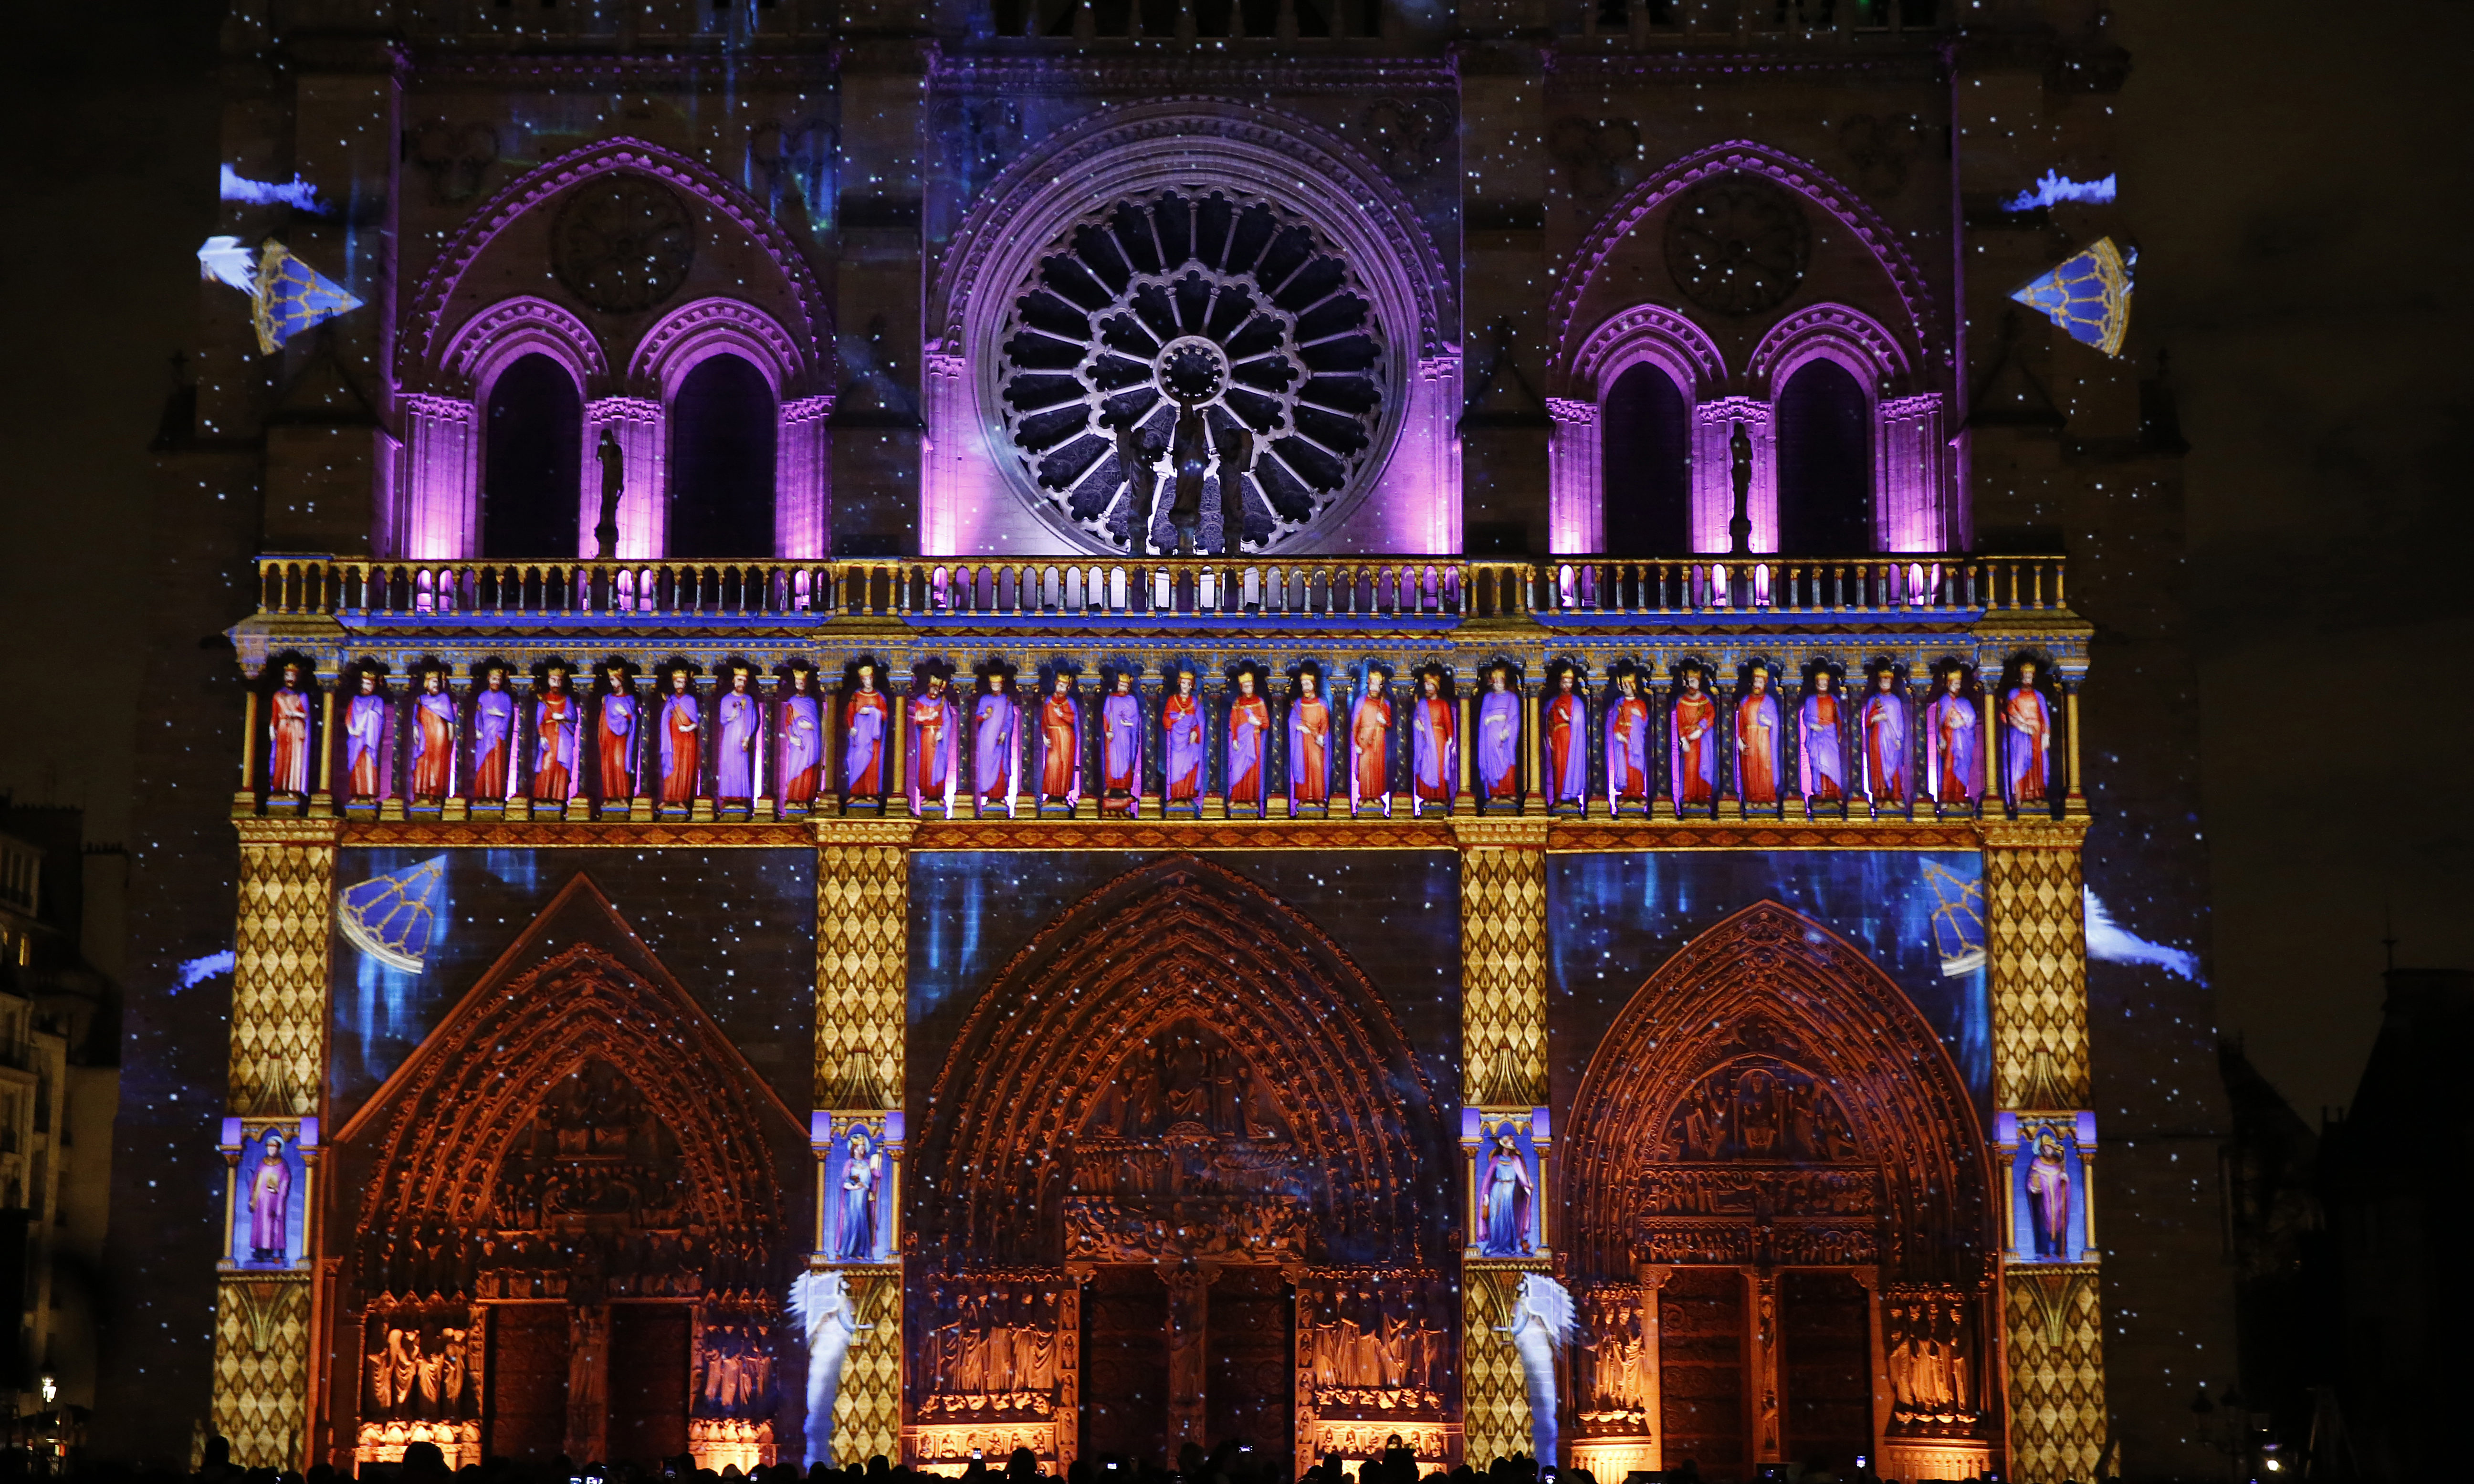 Sound and light show at Notre Dame de Paris cathedral, France.